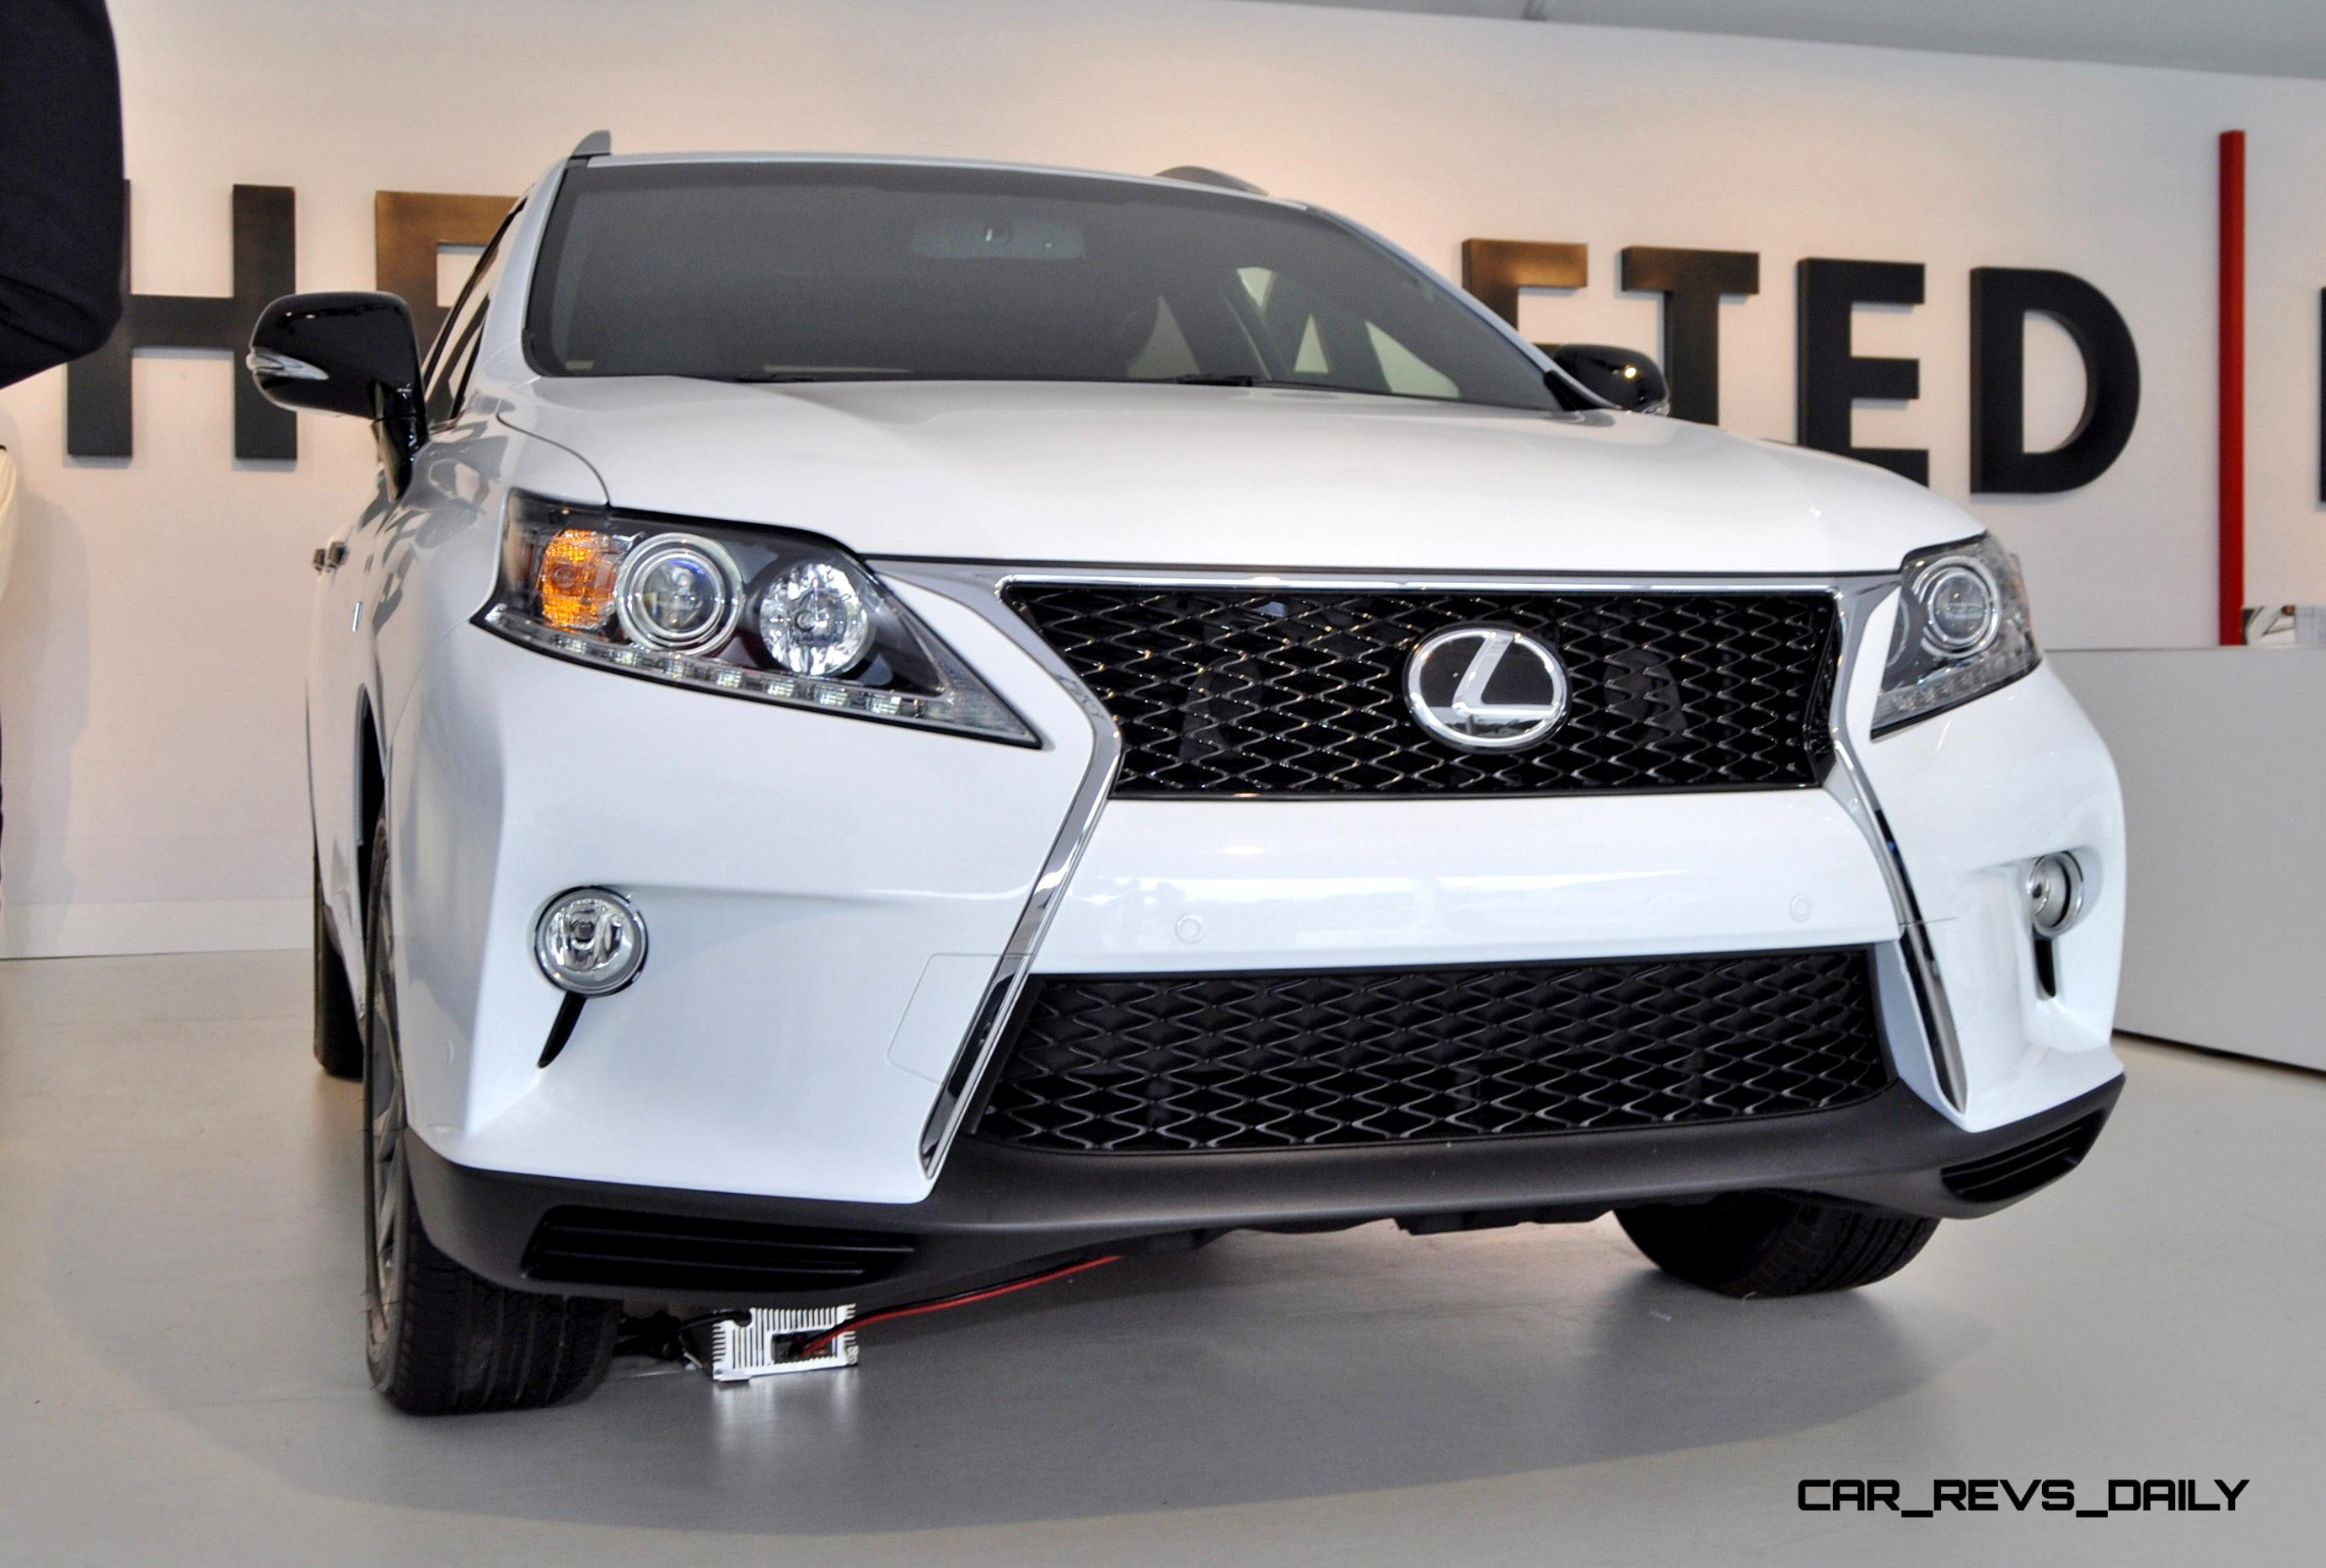 2015 Lexus RX350 CRAFTED LINE Pebble Beach Debut In Detail